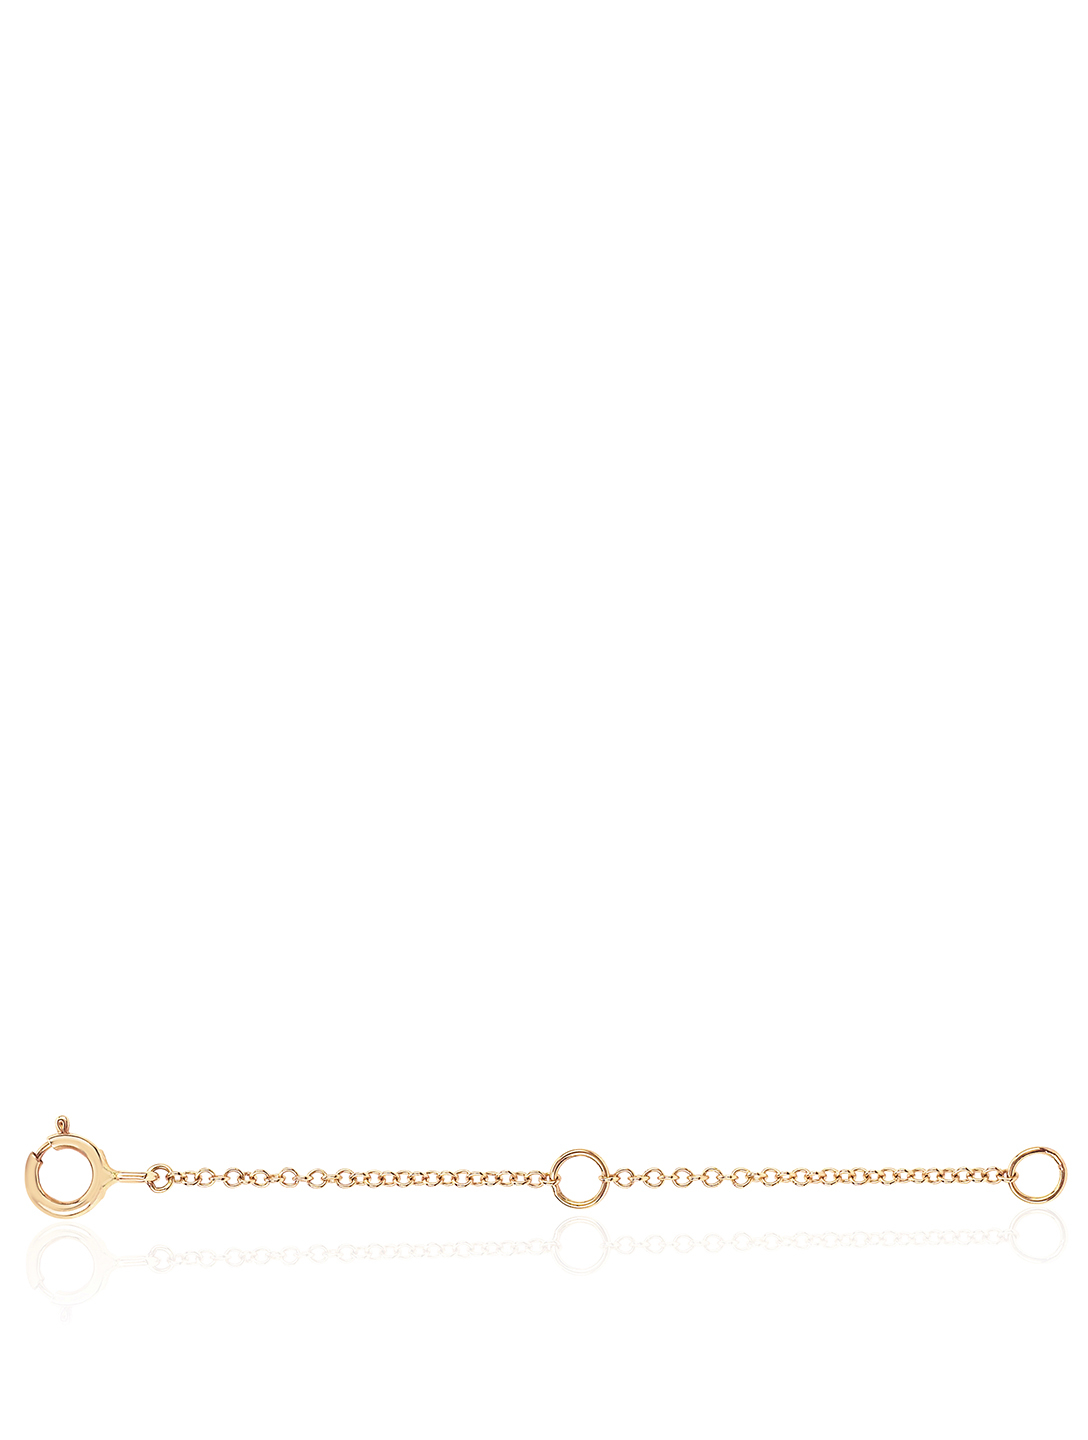 EF COLLECTION 14K Gold Chain Extender Women's Metallic